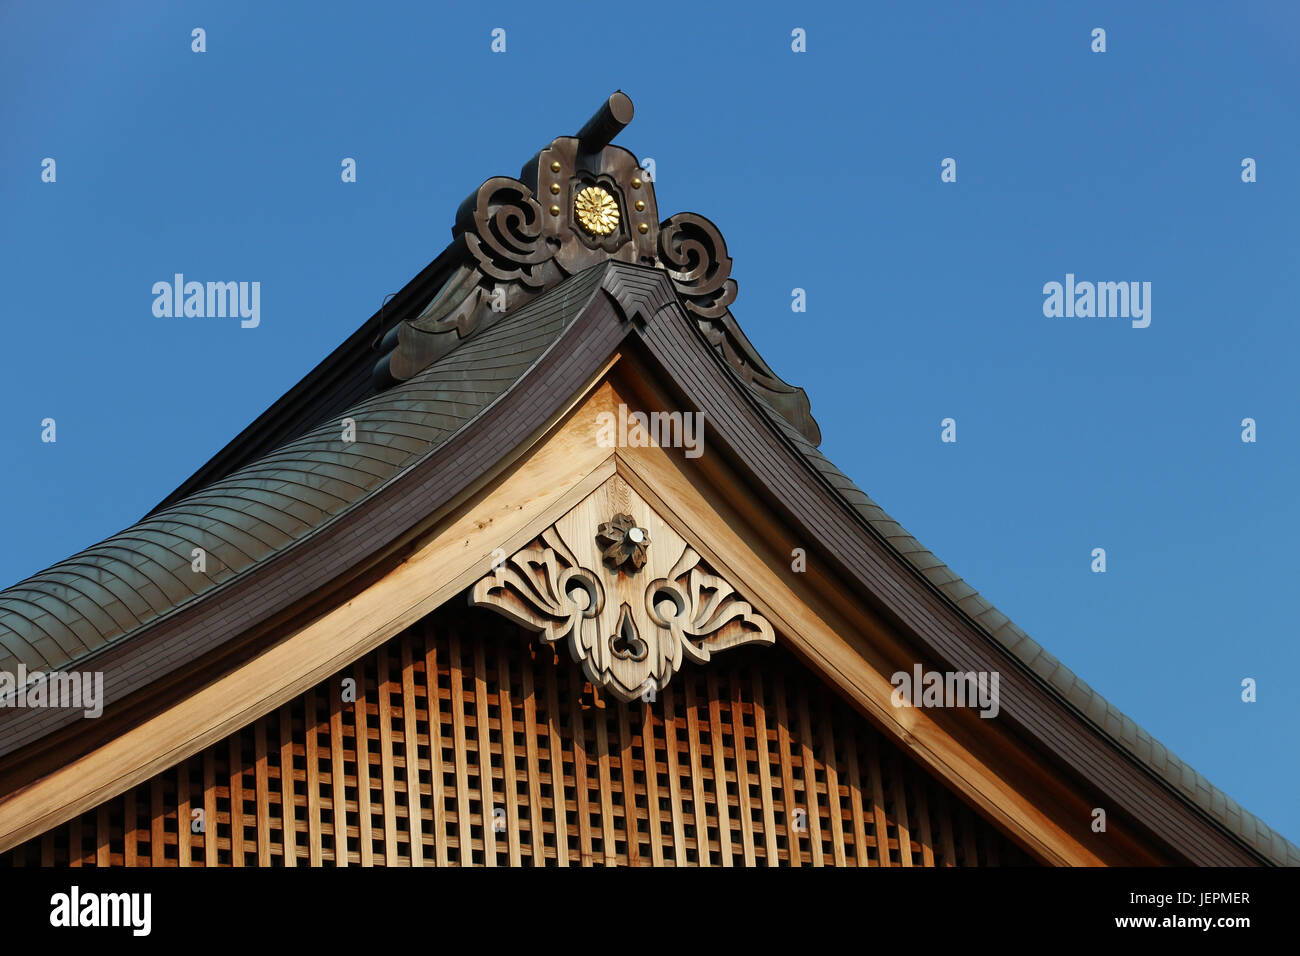 Peak end of an ornate roof with wooden carvings in the Yasukuni Shrine complex in Tokyo, Japan. Warm brown wood - Stock Image